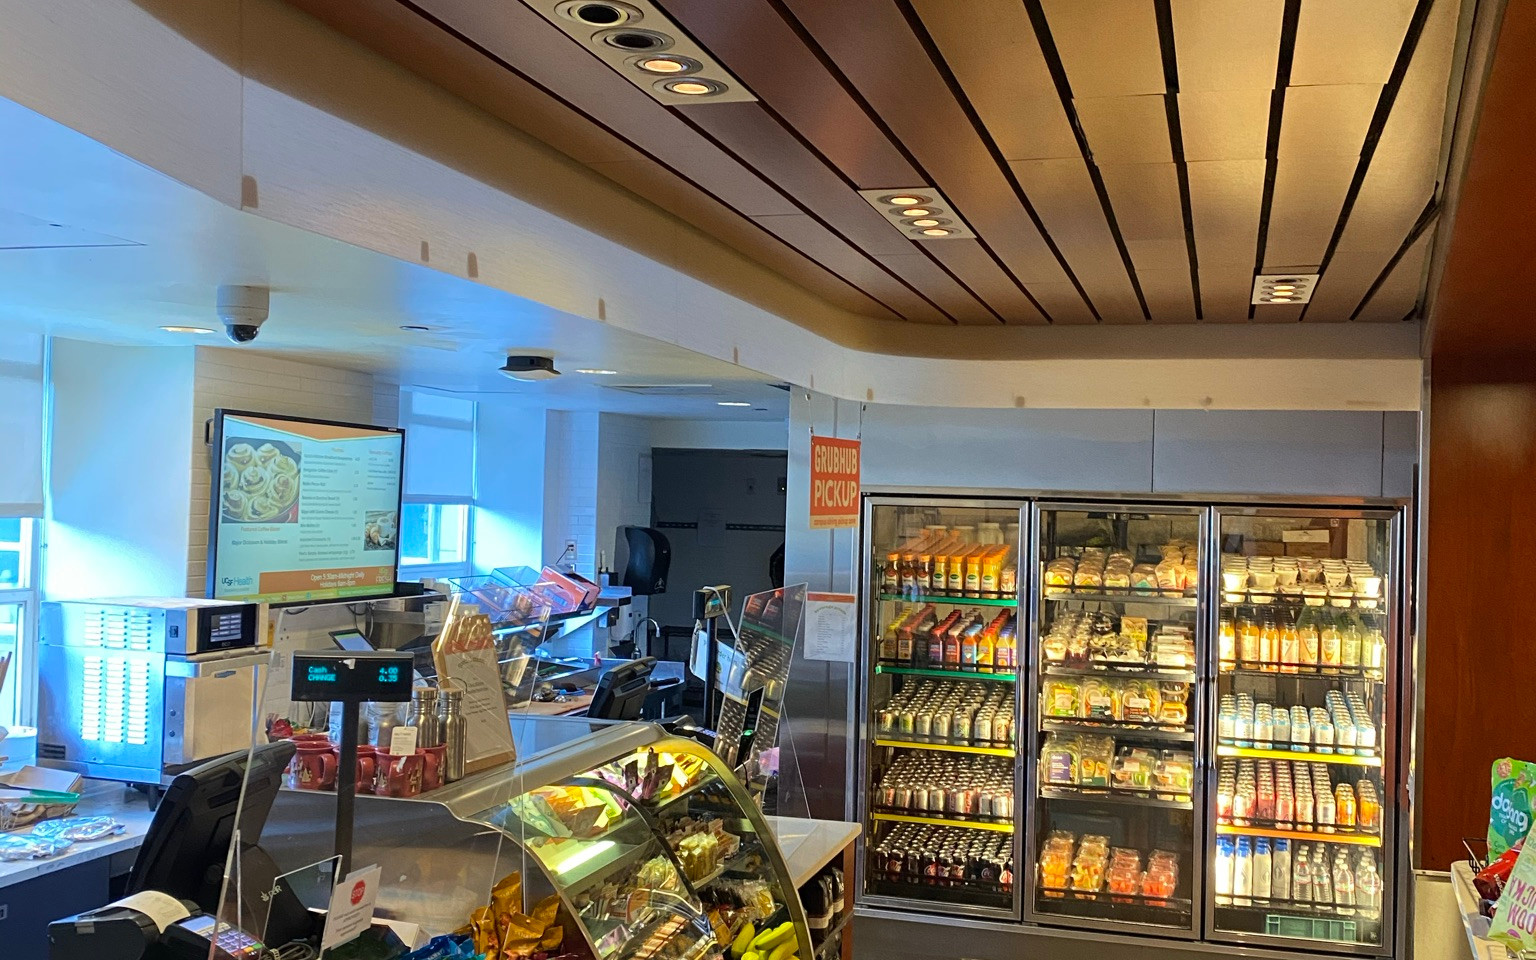 UCSF Moffitt Hospital Cafe